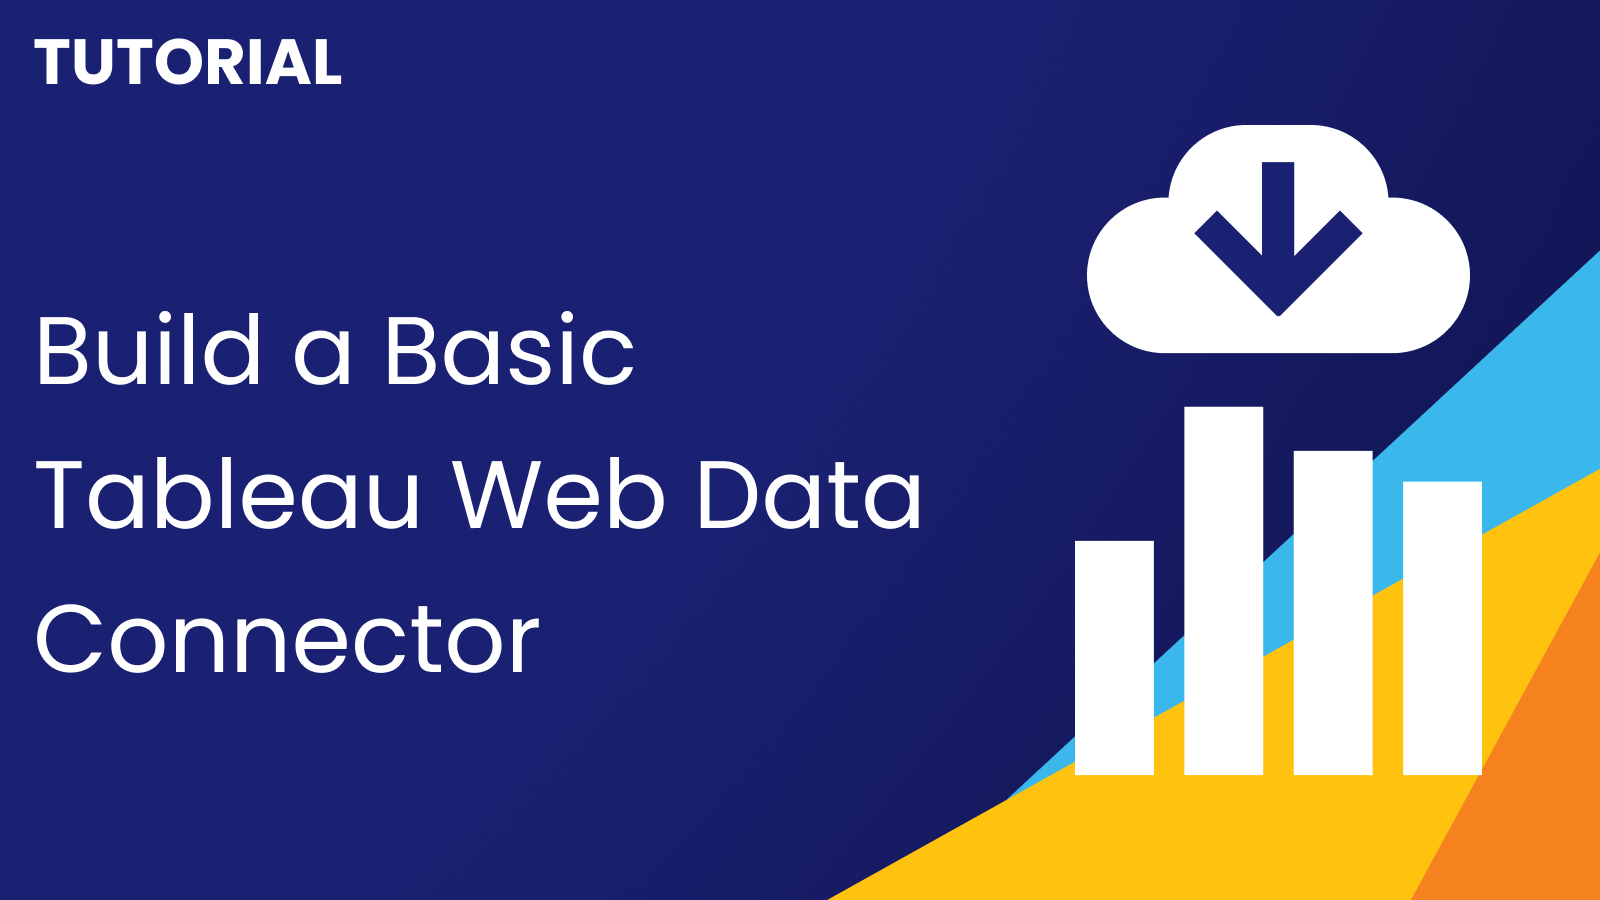 How to Build a Basic Tableau Web Data Connector